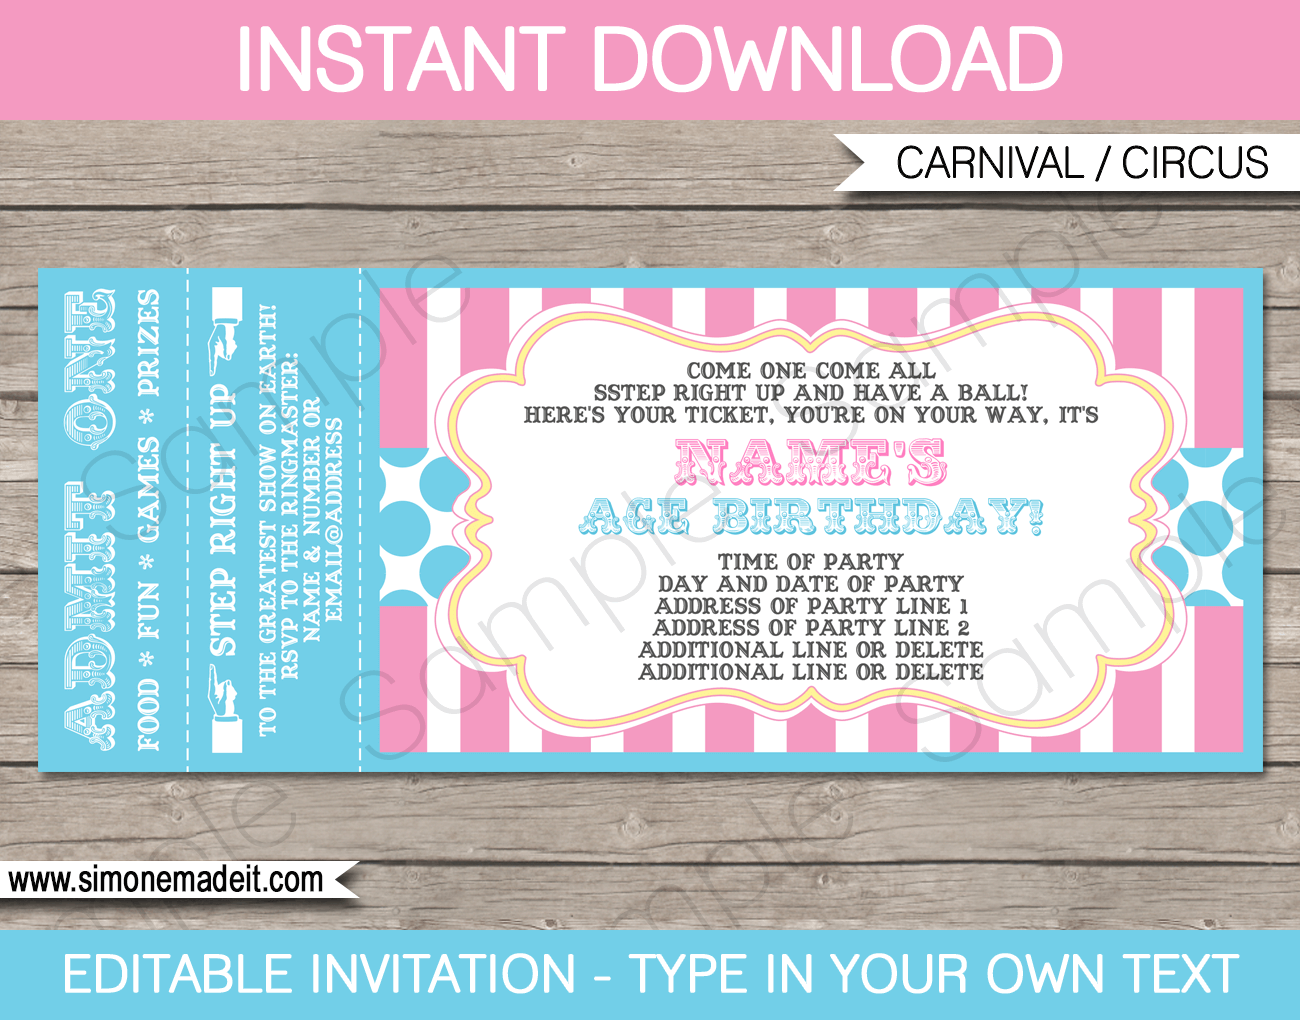 Carnival Party Ticket Invitations Template Carnival or Circus